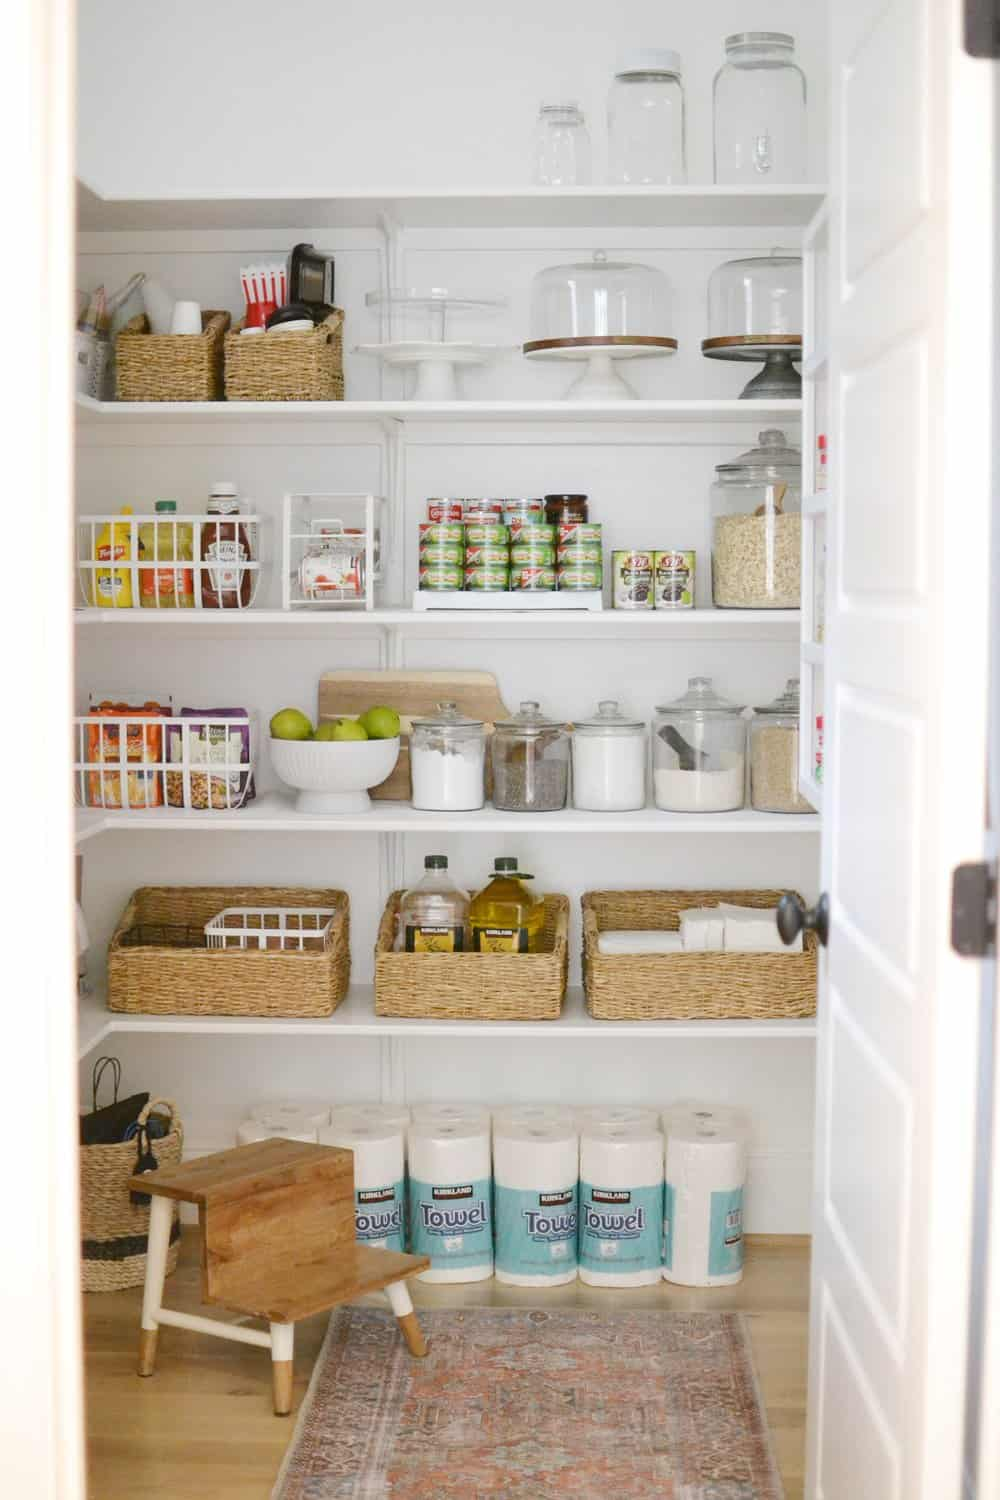 clean pantry door open